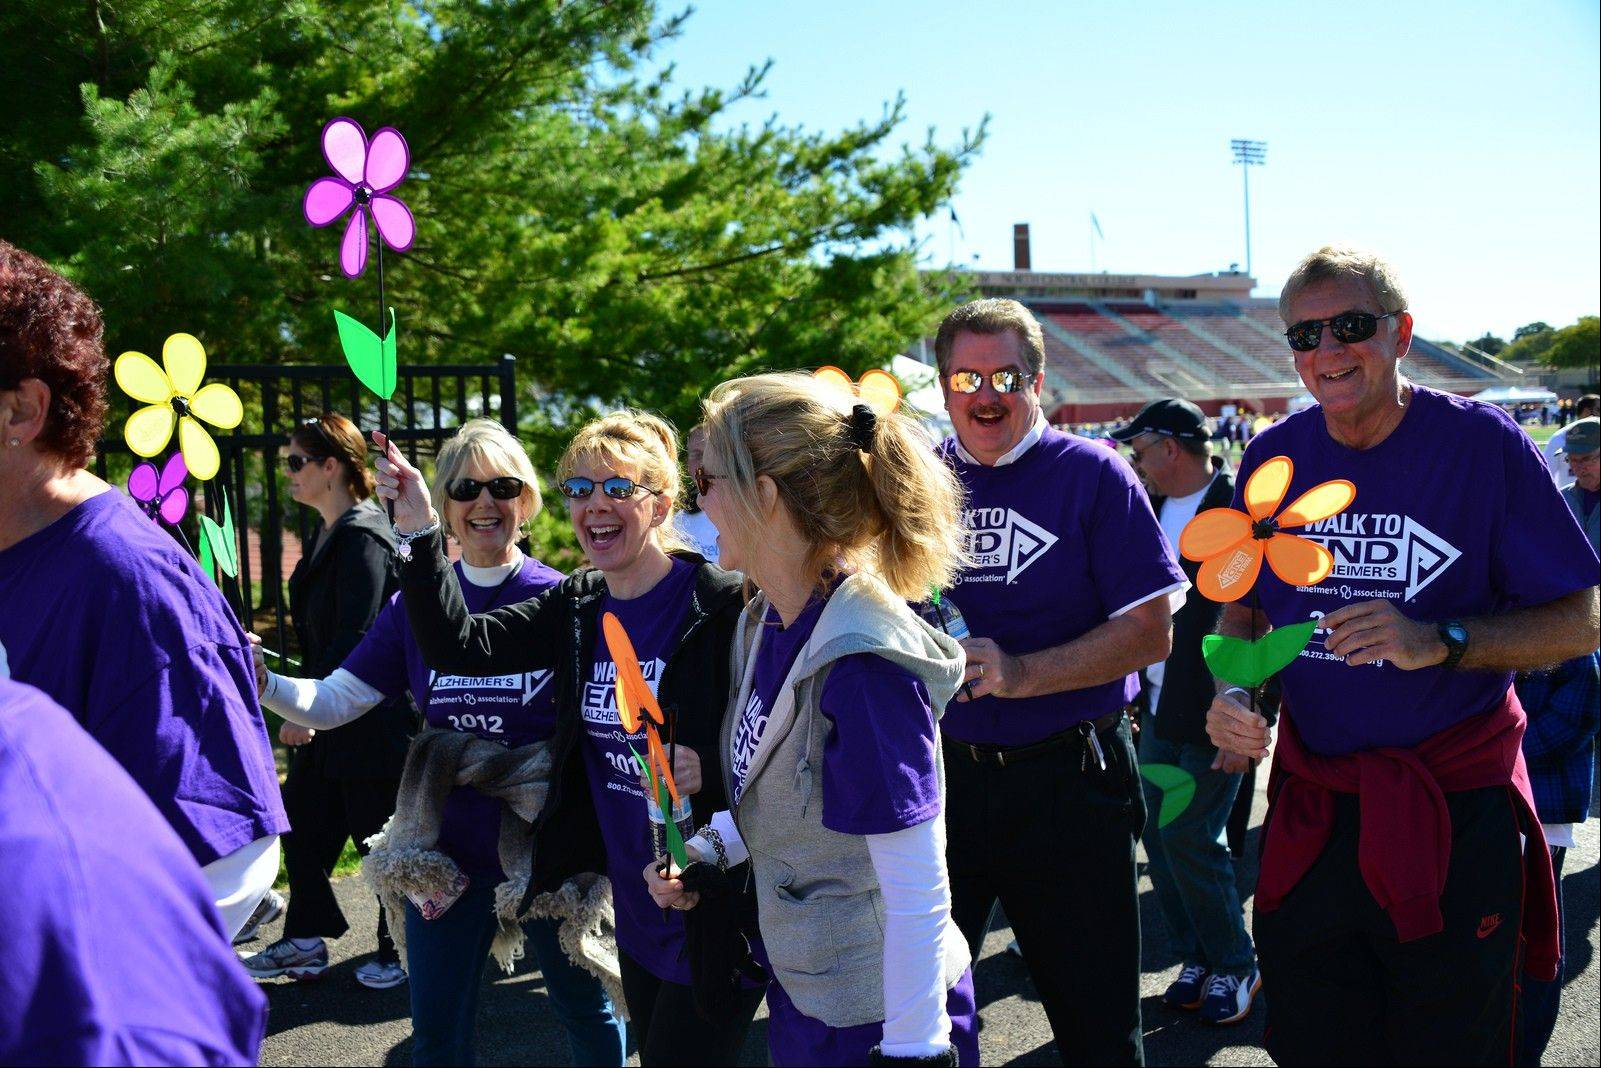 The Walk to End Alzheimer's, on Sunday at North Central College's Benedetti-Wehrli Stadium will raise money to support research and programs through the Alzheimer's Association.